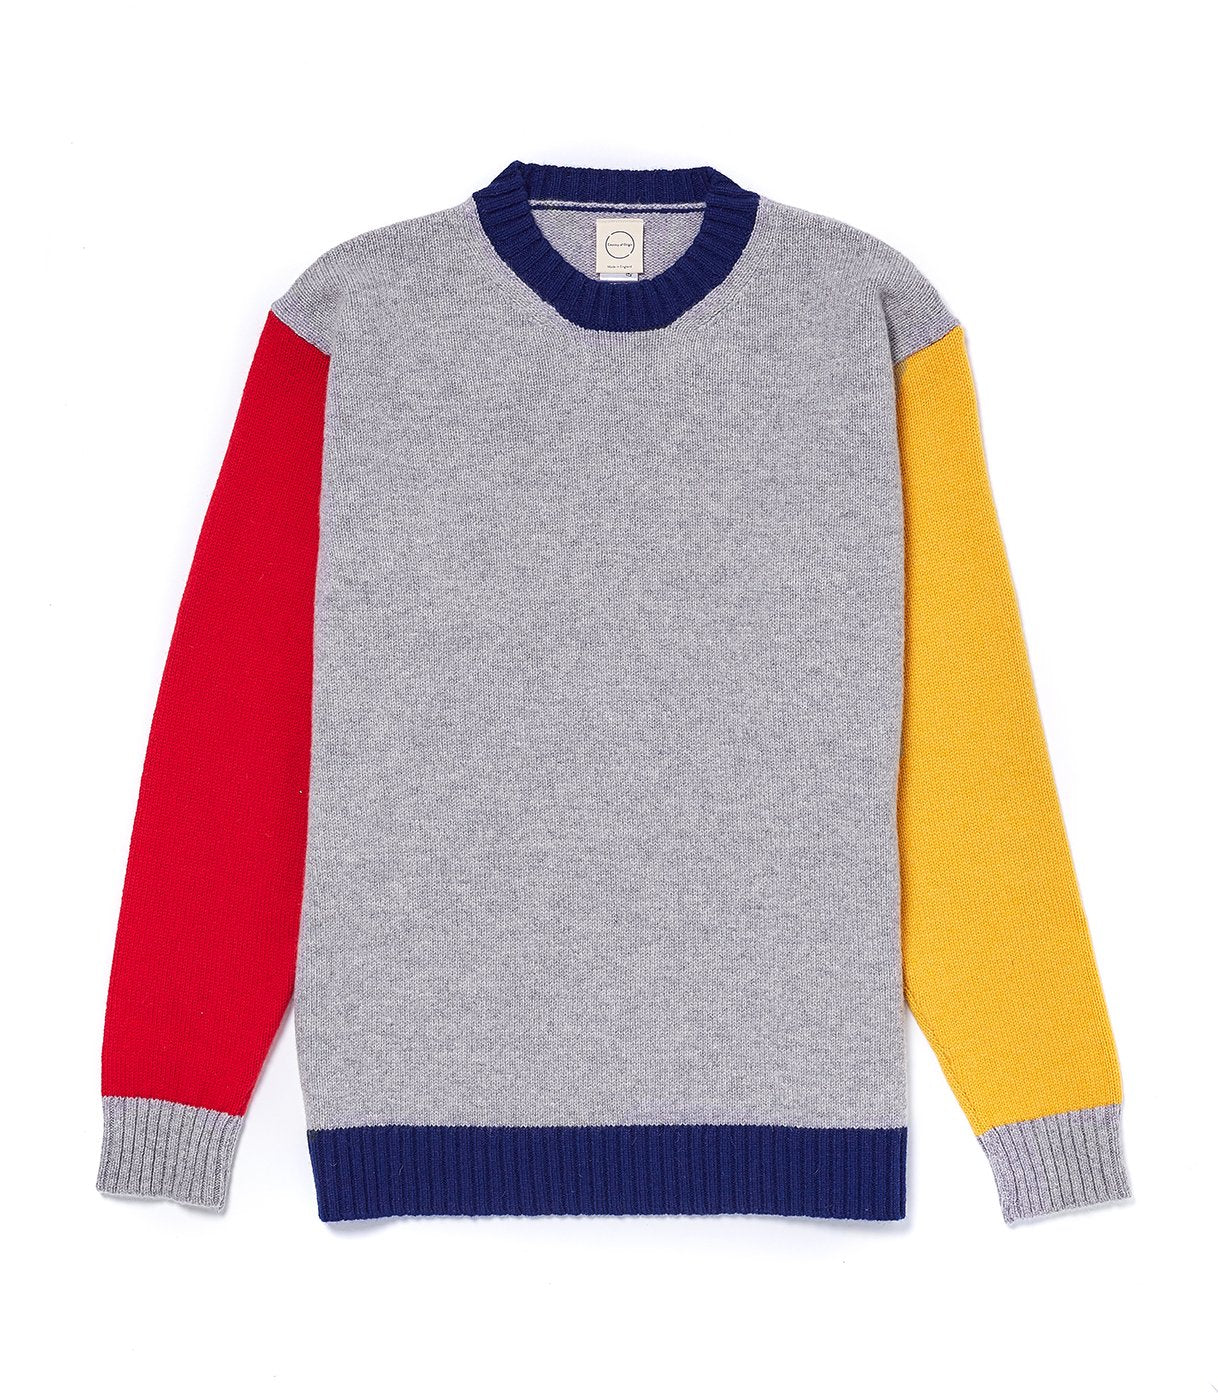 Tri-Colour Sweater in Grey, Yellow and Red